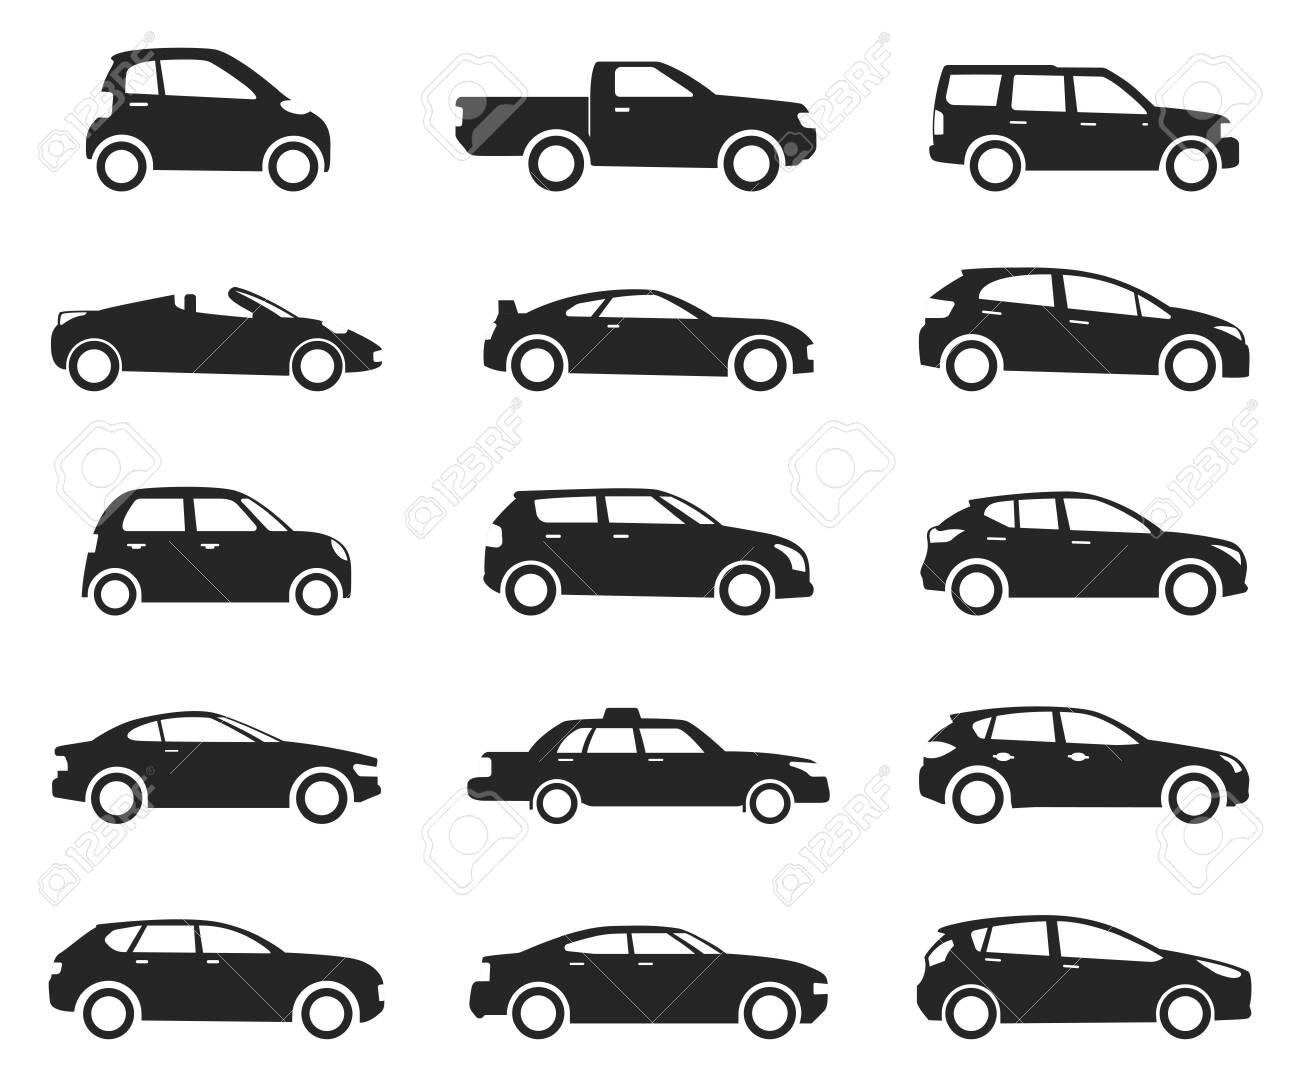 Car icon side view set, black silhouette. Road vehicle with four wheels, business transportation and automobile sport. Vector illustration - 122435145